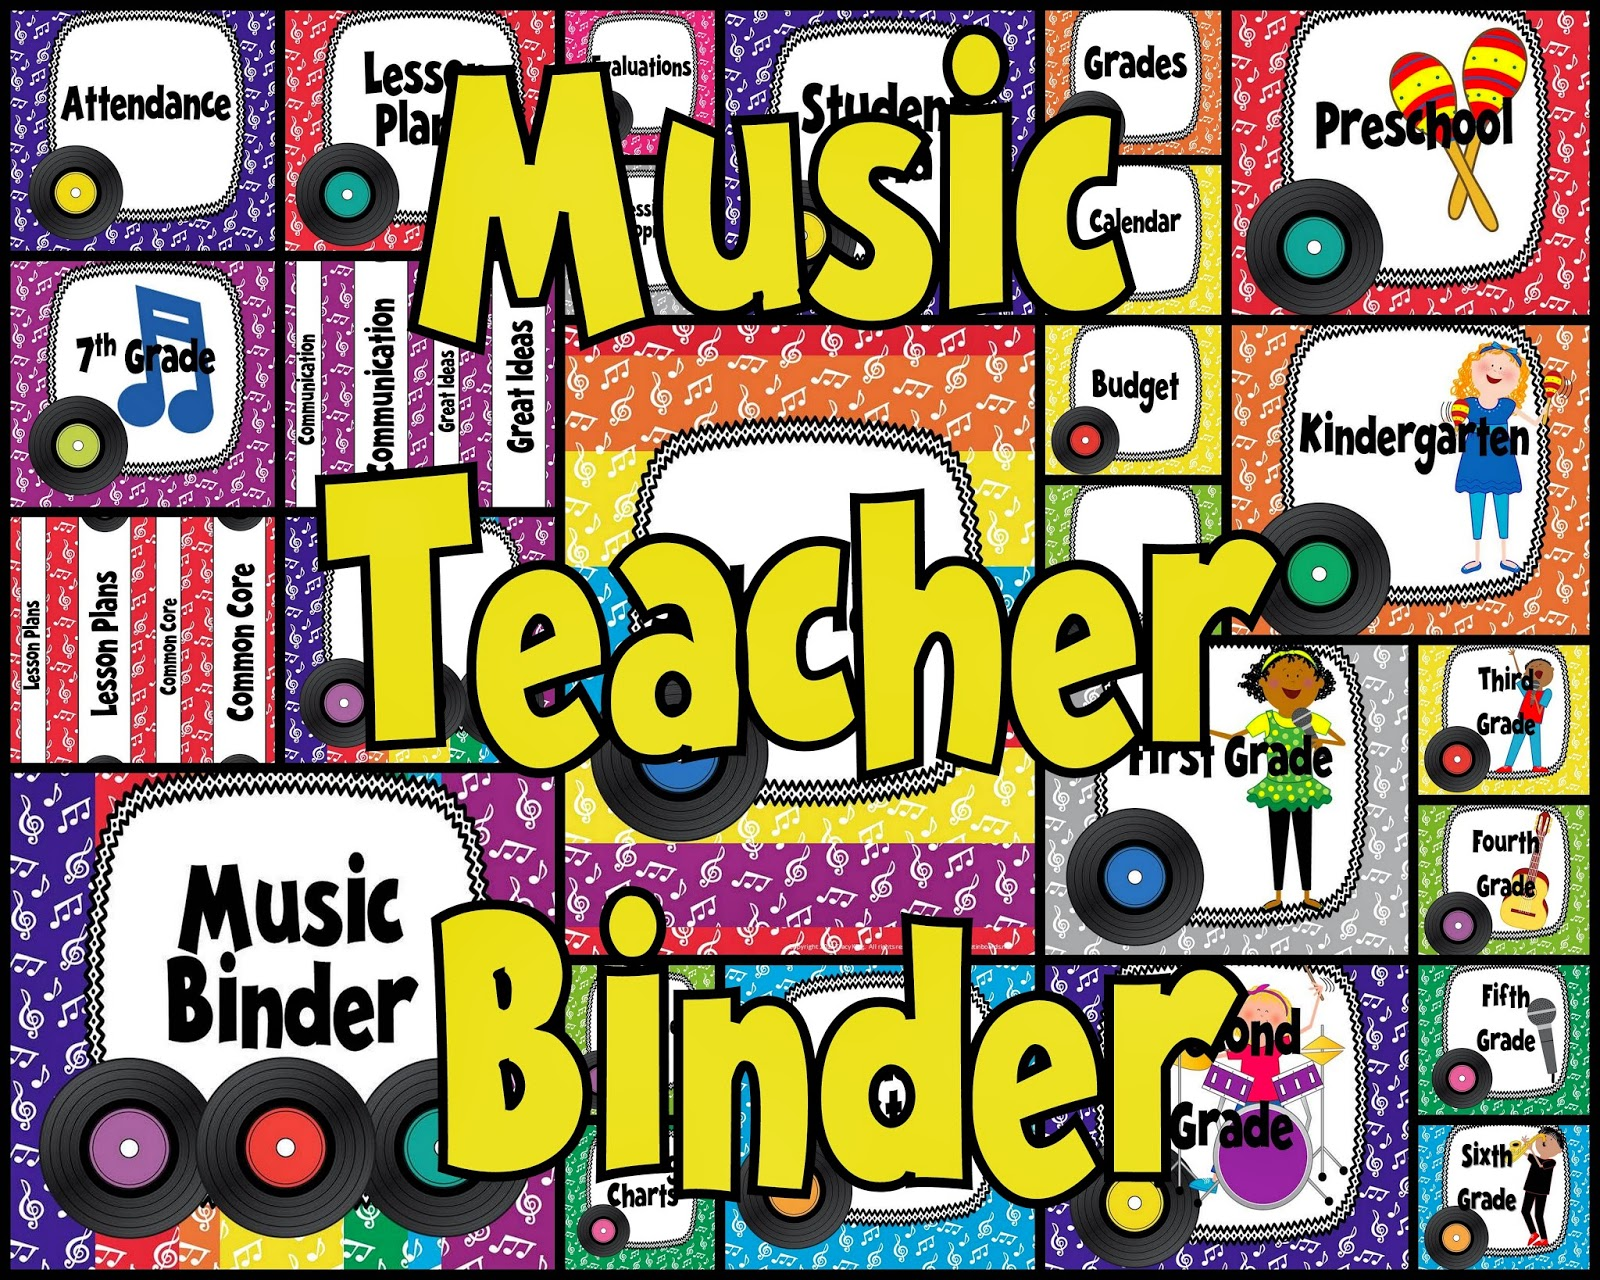 http://www.teacherspayteachers.com/Product/Music-Teacher-Binder-Covers-and-Labels-Rainbow-Records-Design-789481